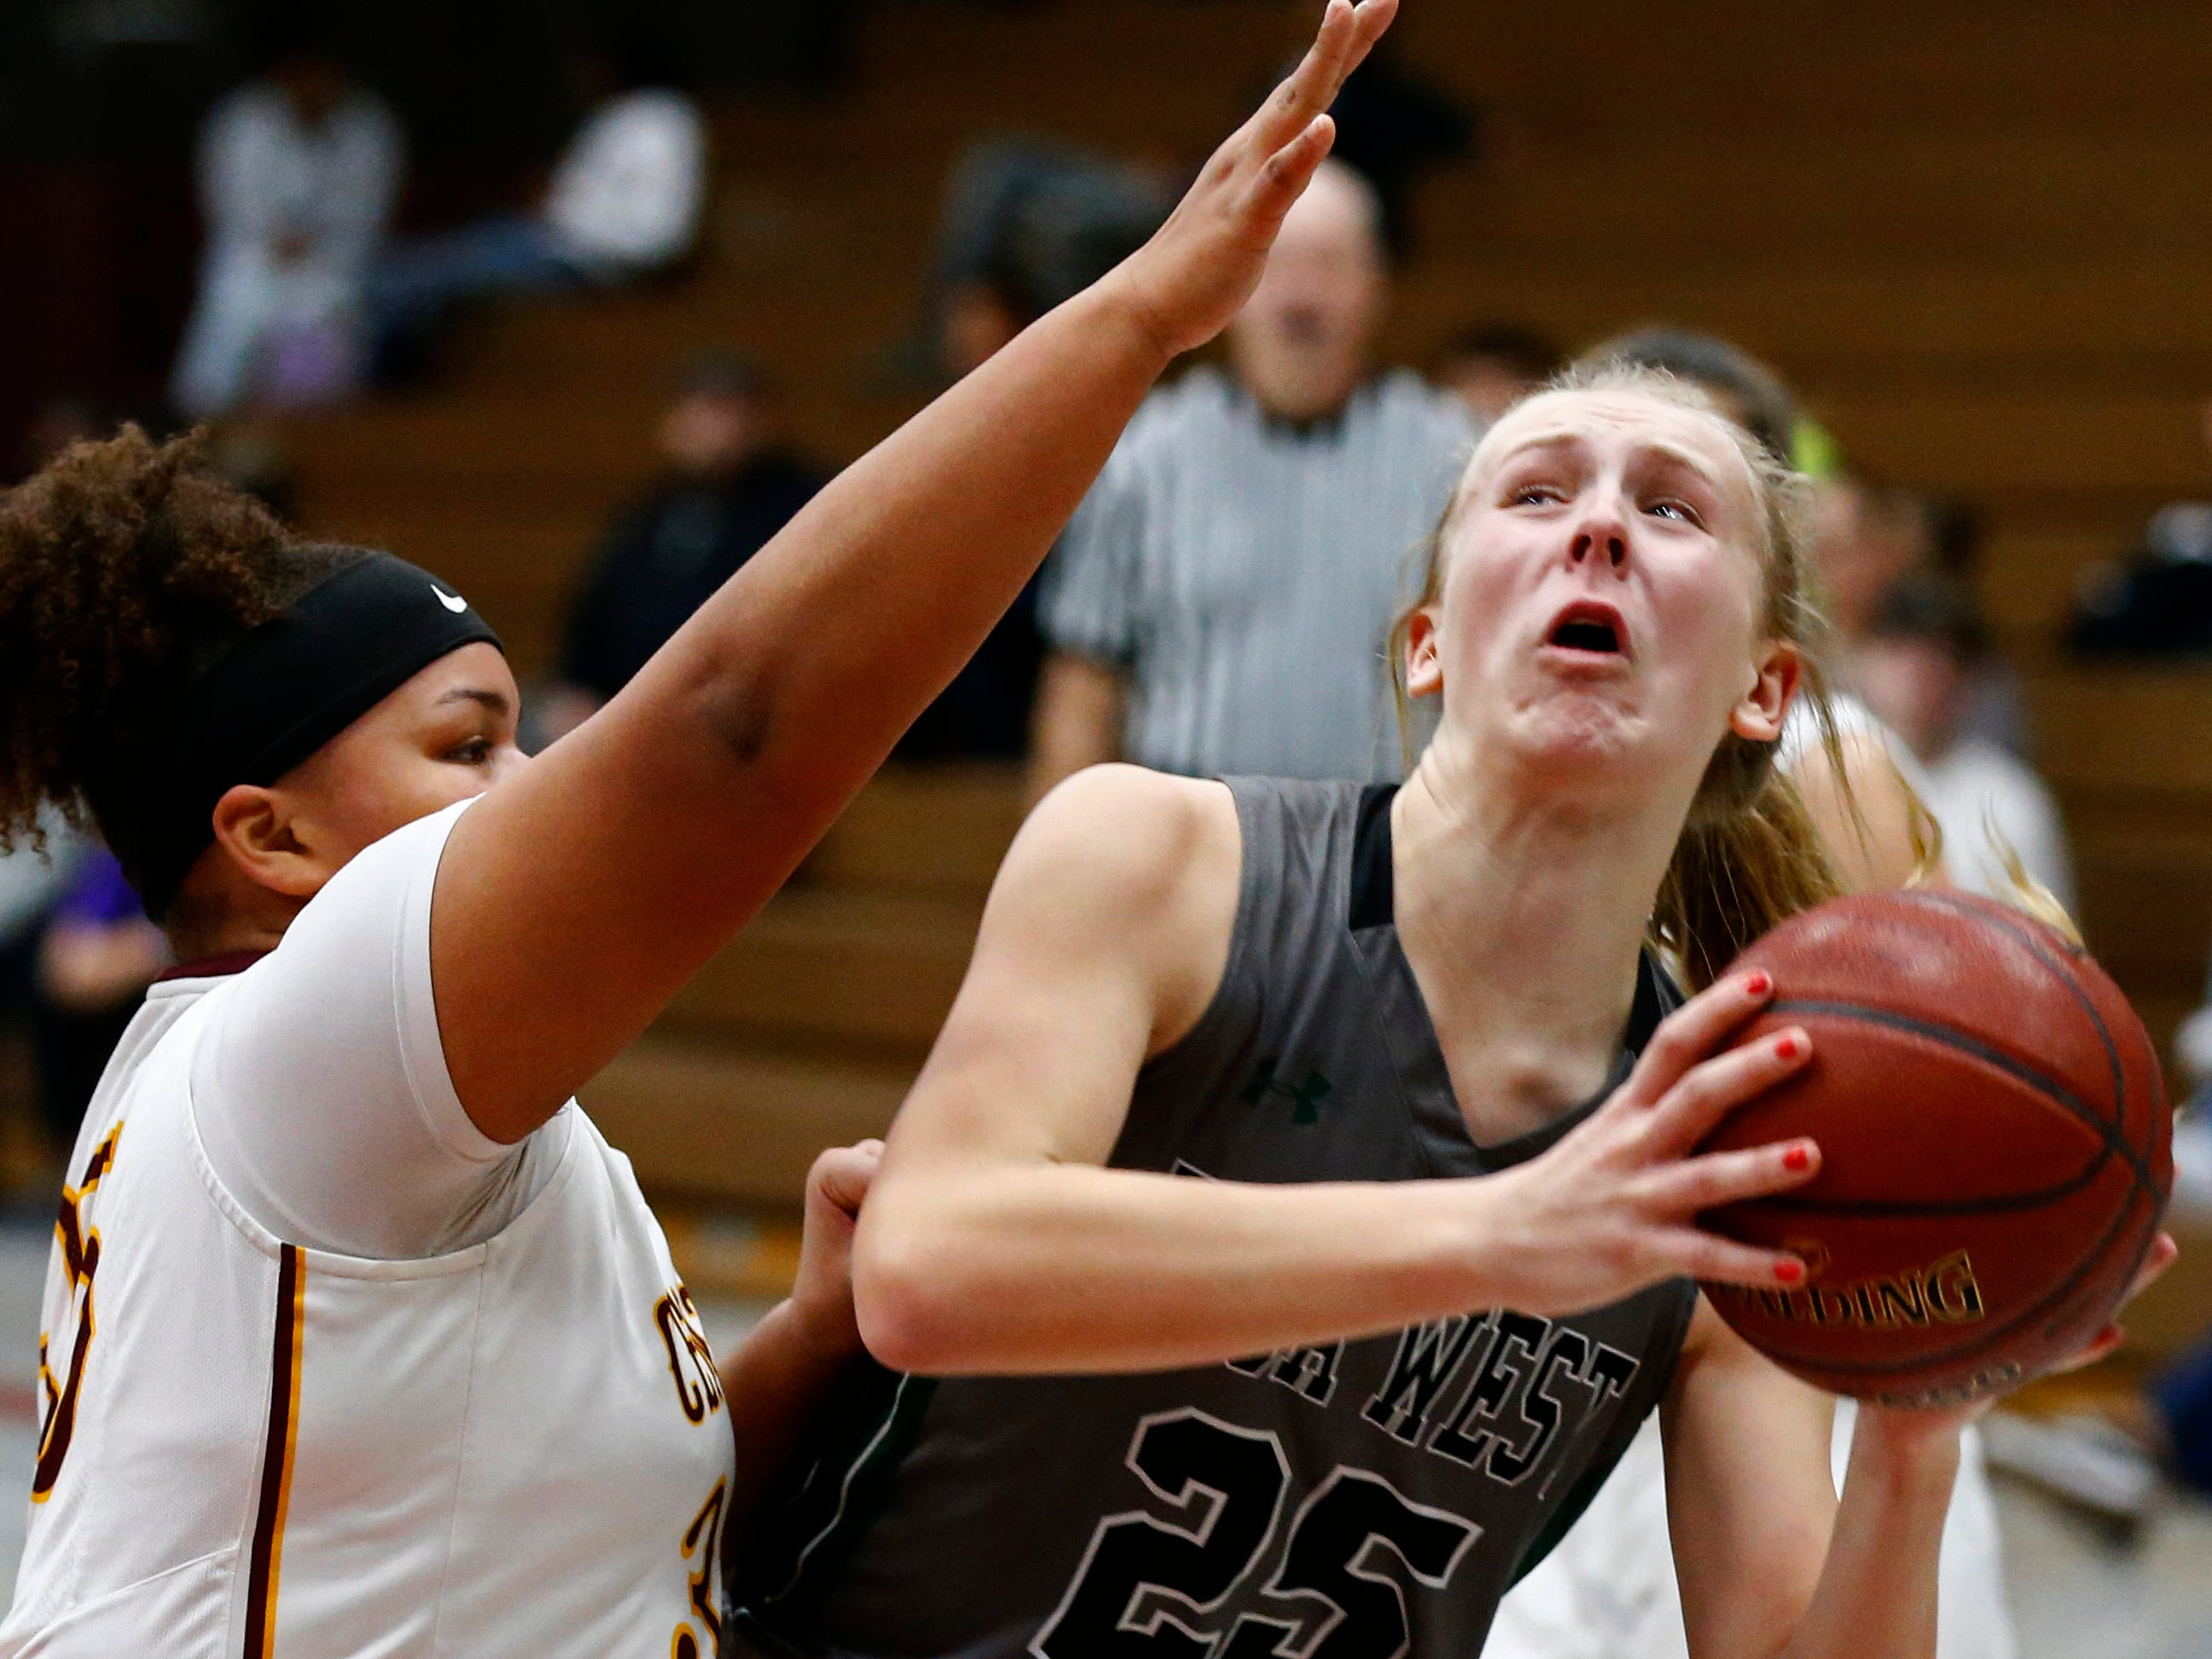 Wauwatosa West's Katie McCabe battles past West Allis Central's Rayne Conroy-Hubbard at Central on Jan. 3.